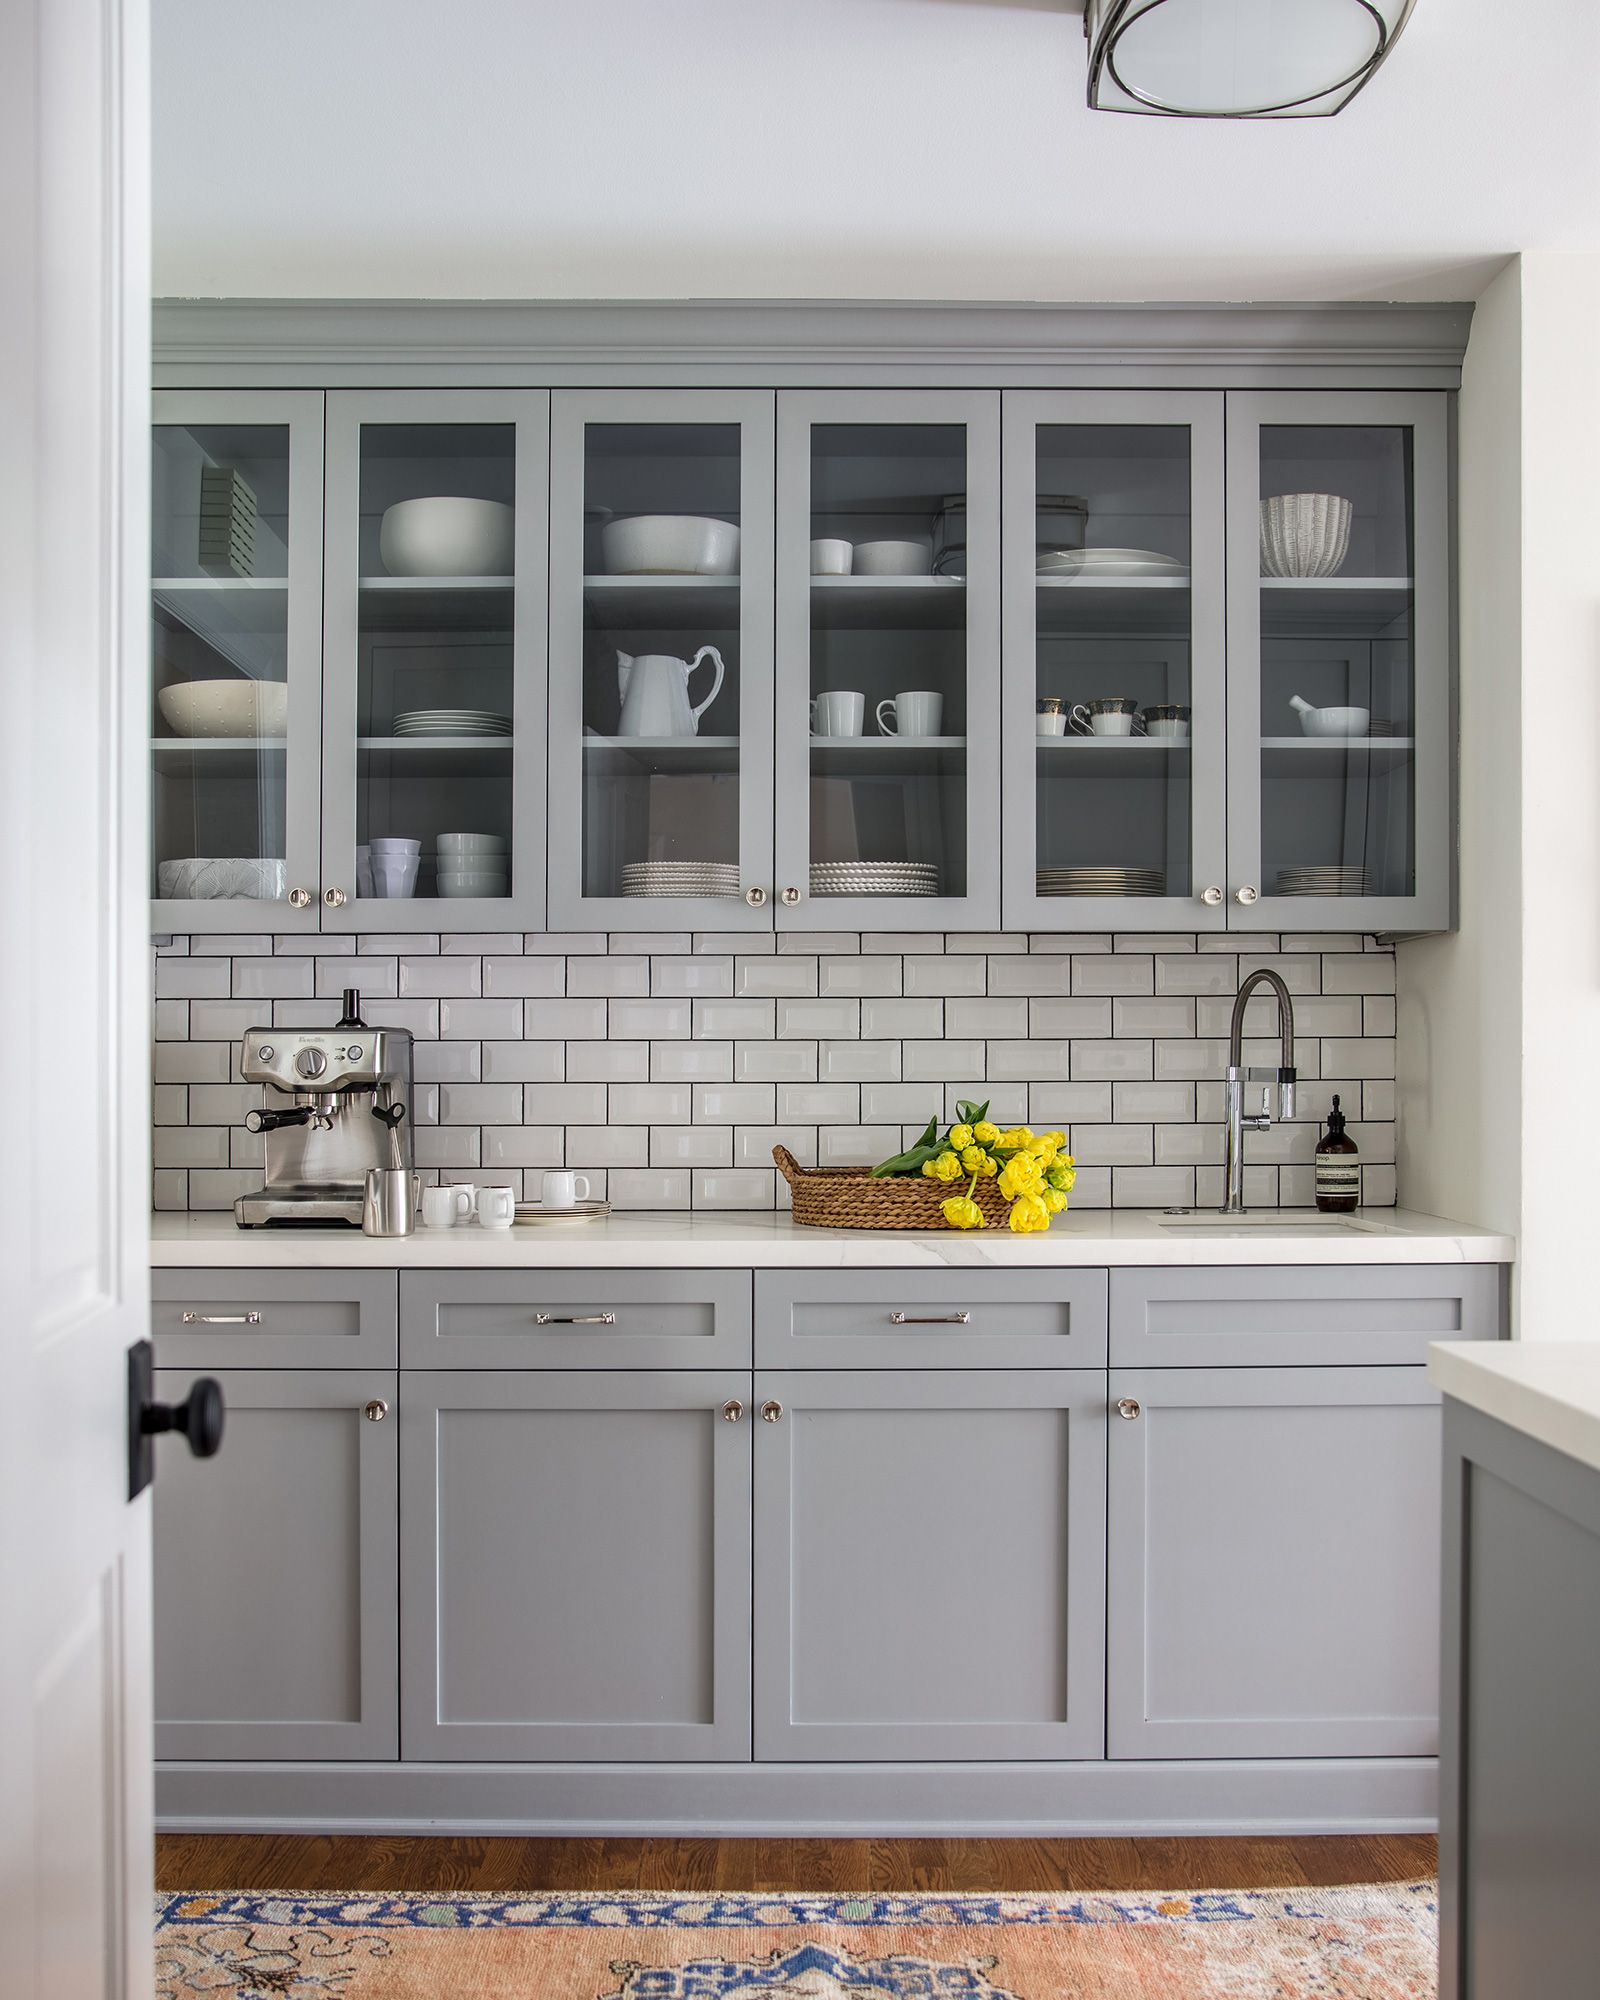 Blue Gray Cabinetry In The Kitchen With White Subway Tile And Dark Grout Antiq Grey Kitchen Cabinets Kitchen Renovation White Subway Tiles Kitchen Backsplash